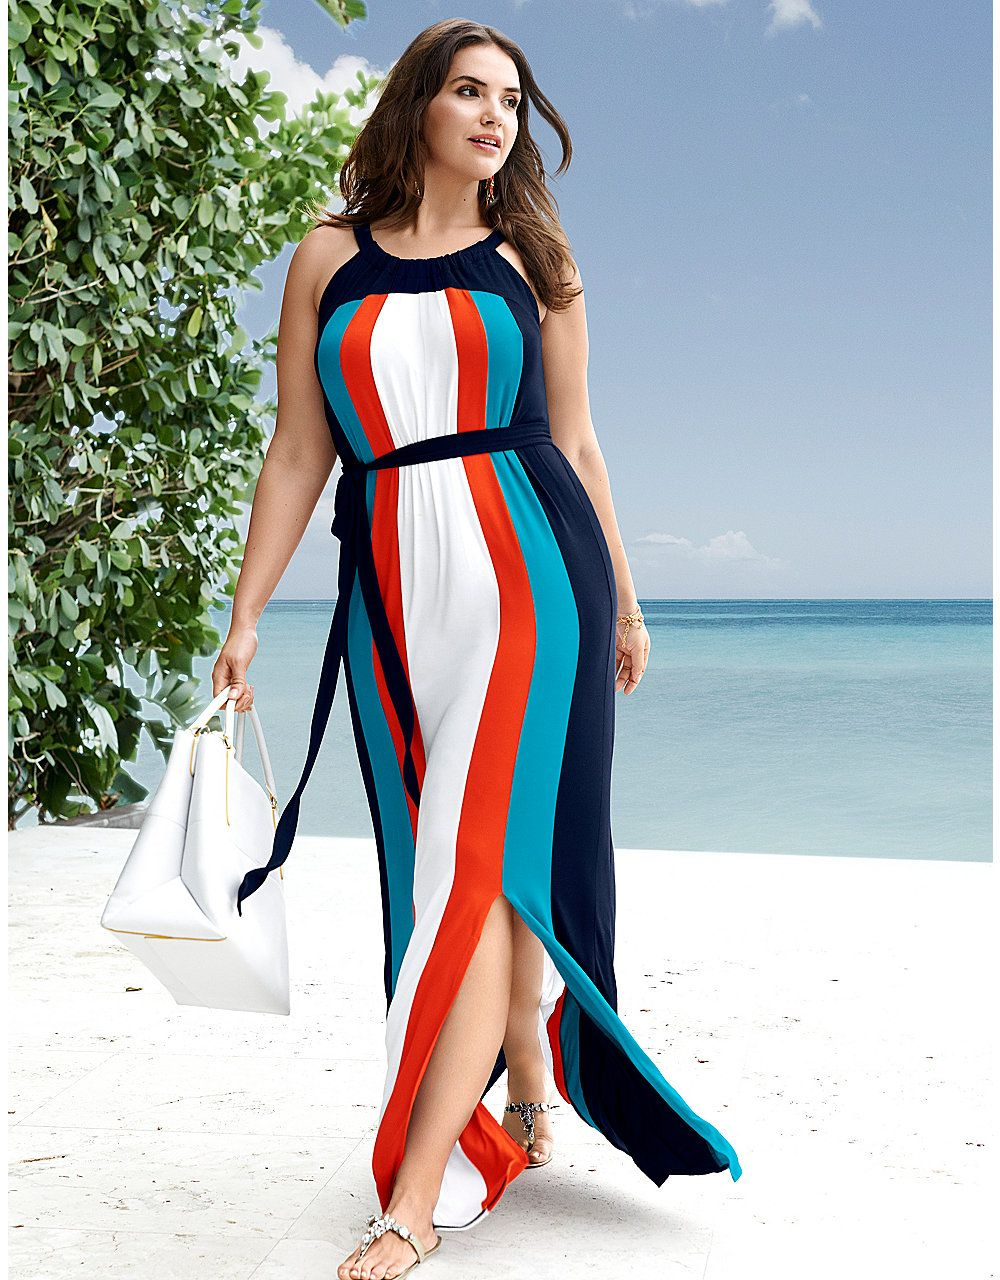 18dced5e66 Plus Size Resort Wear Maxi Dress by Lane Bryant | Lane Bryant | Plus ...